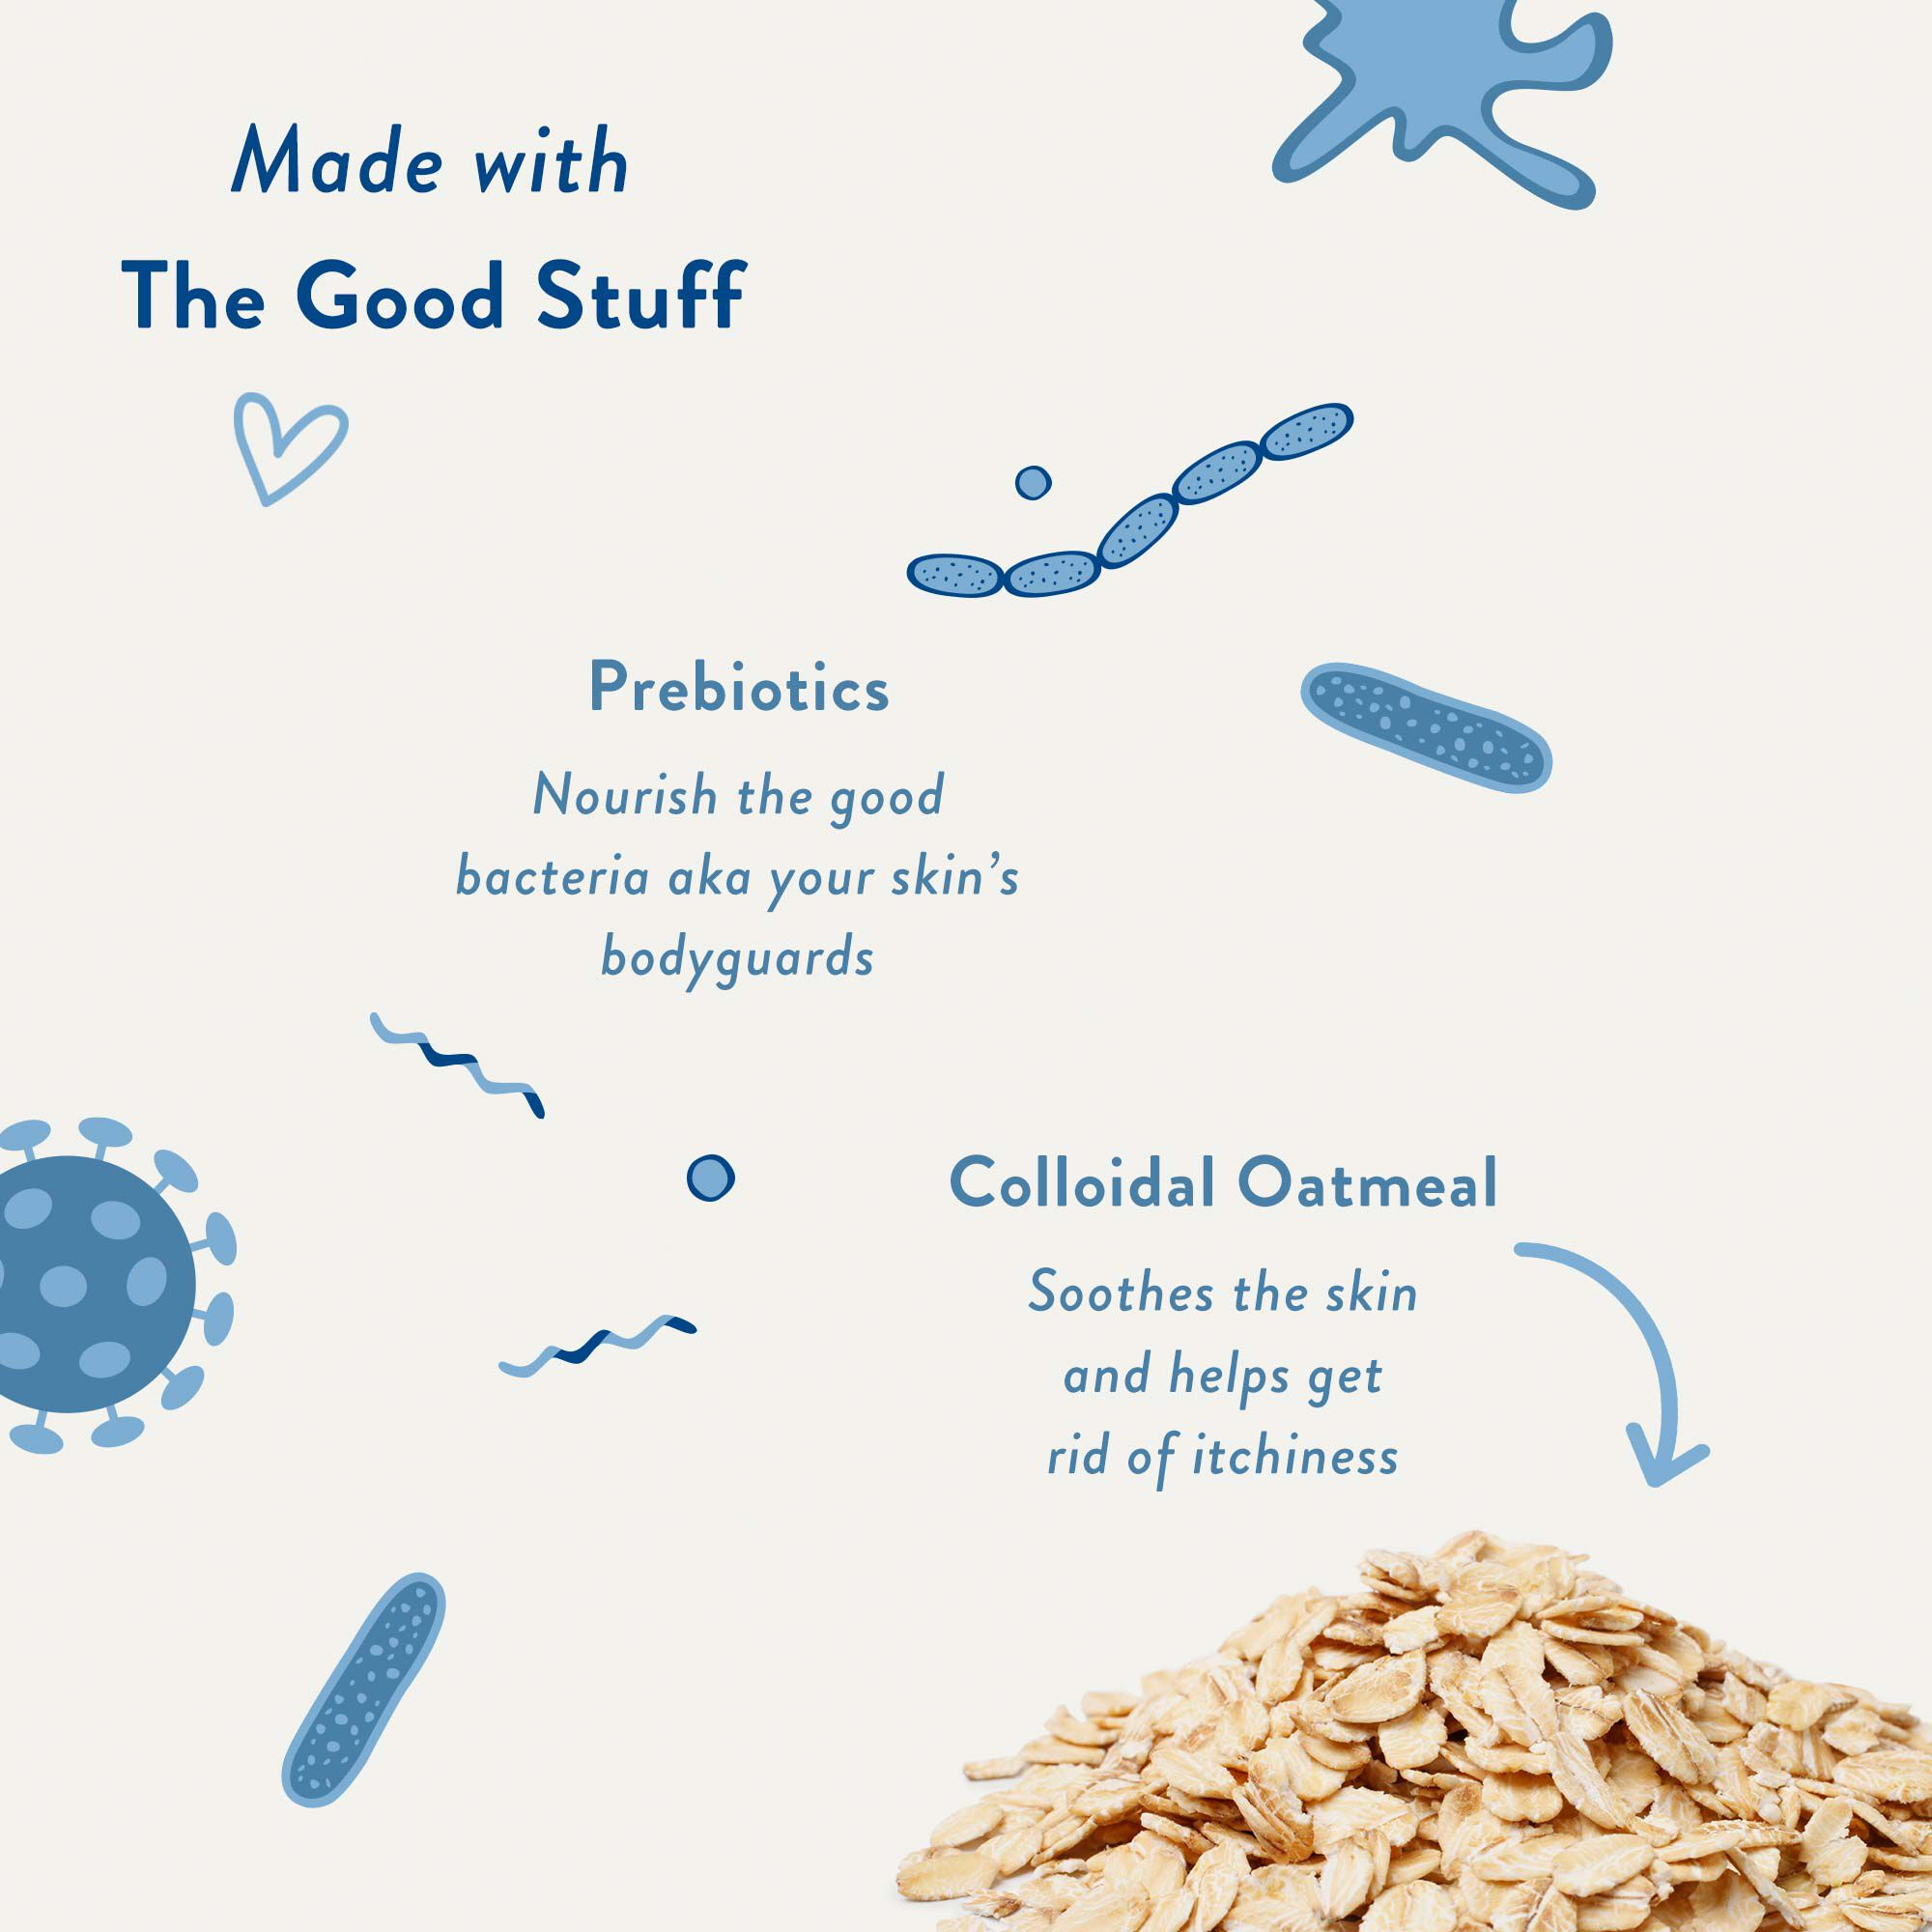 ingredient callouts like collodial oatmeal and prebiotics